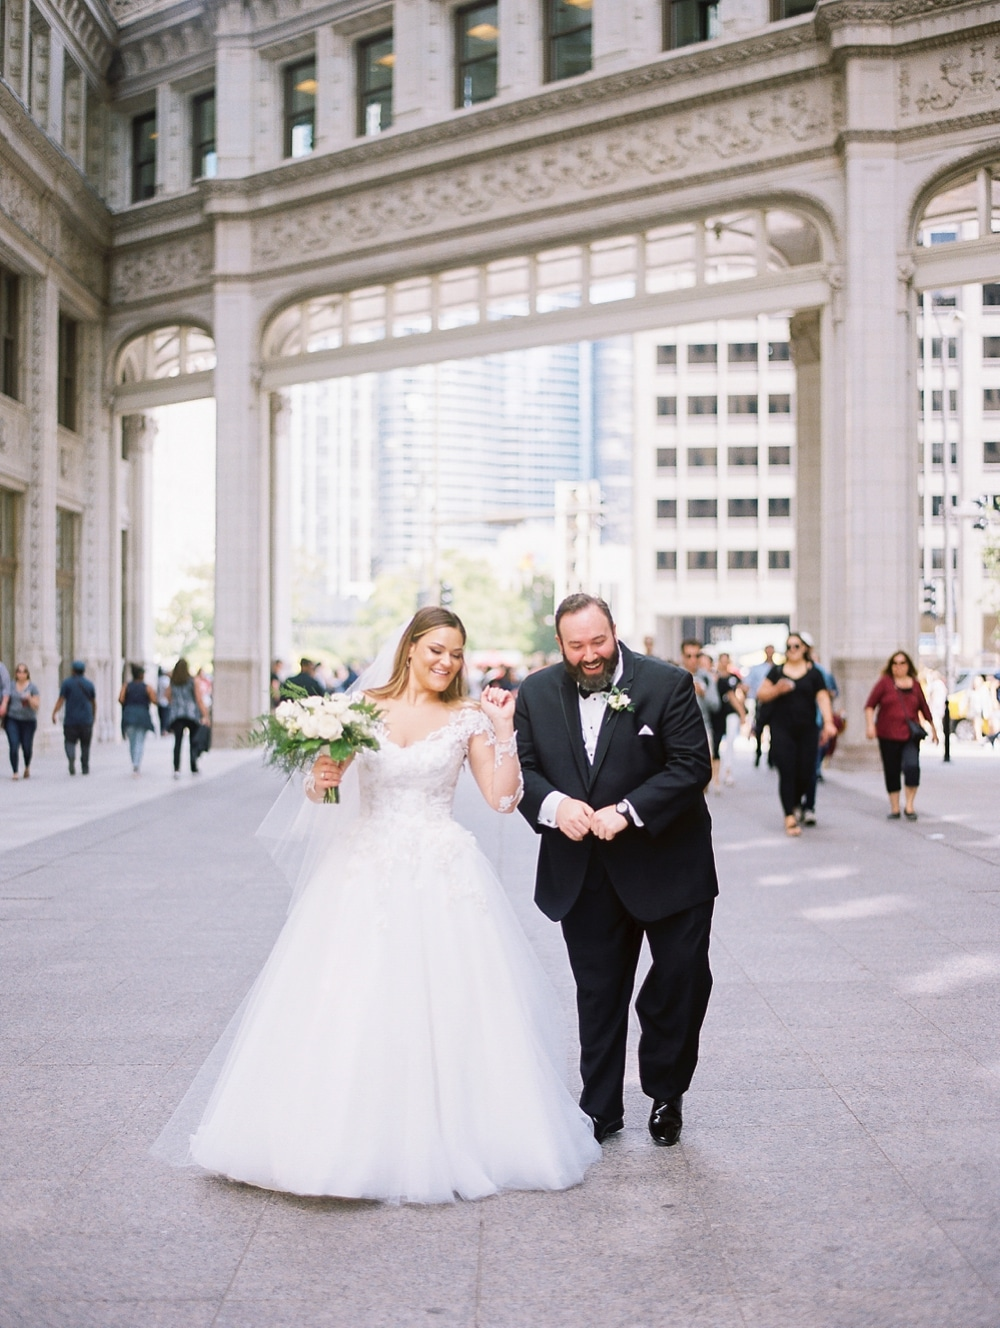 Kristin-La-Voie-Photography-field-museum-chicago-wedding-photos-139